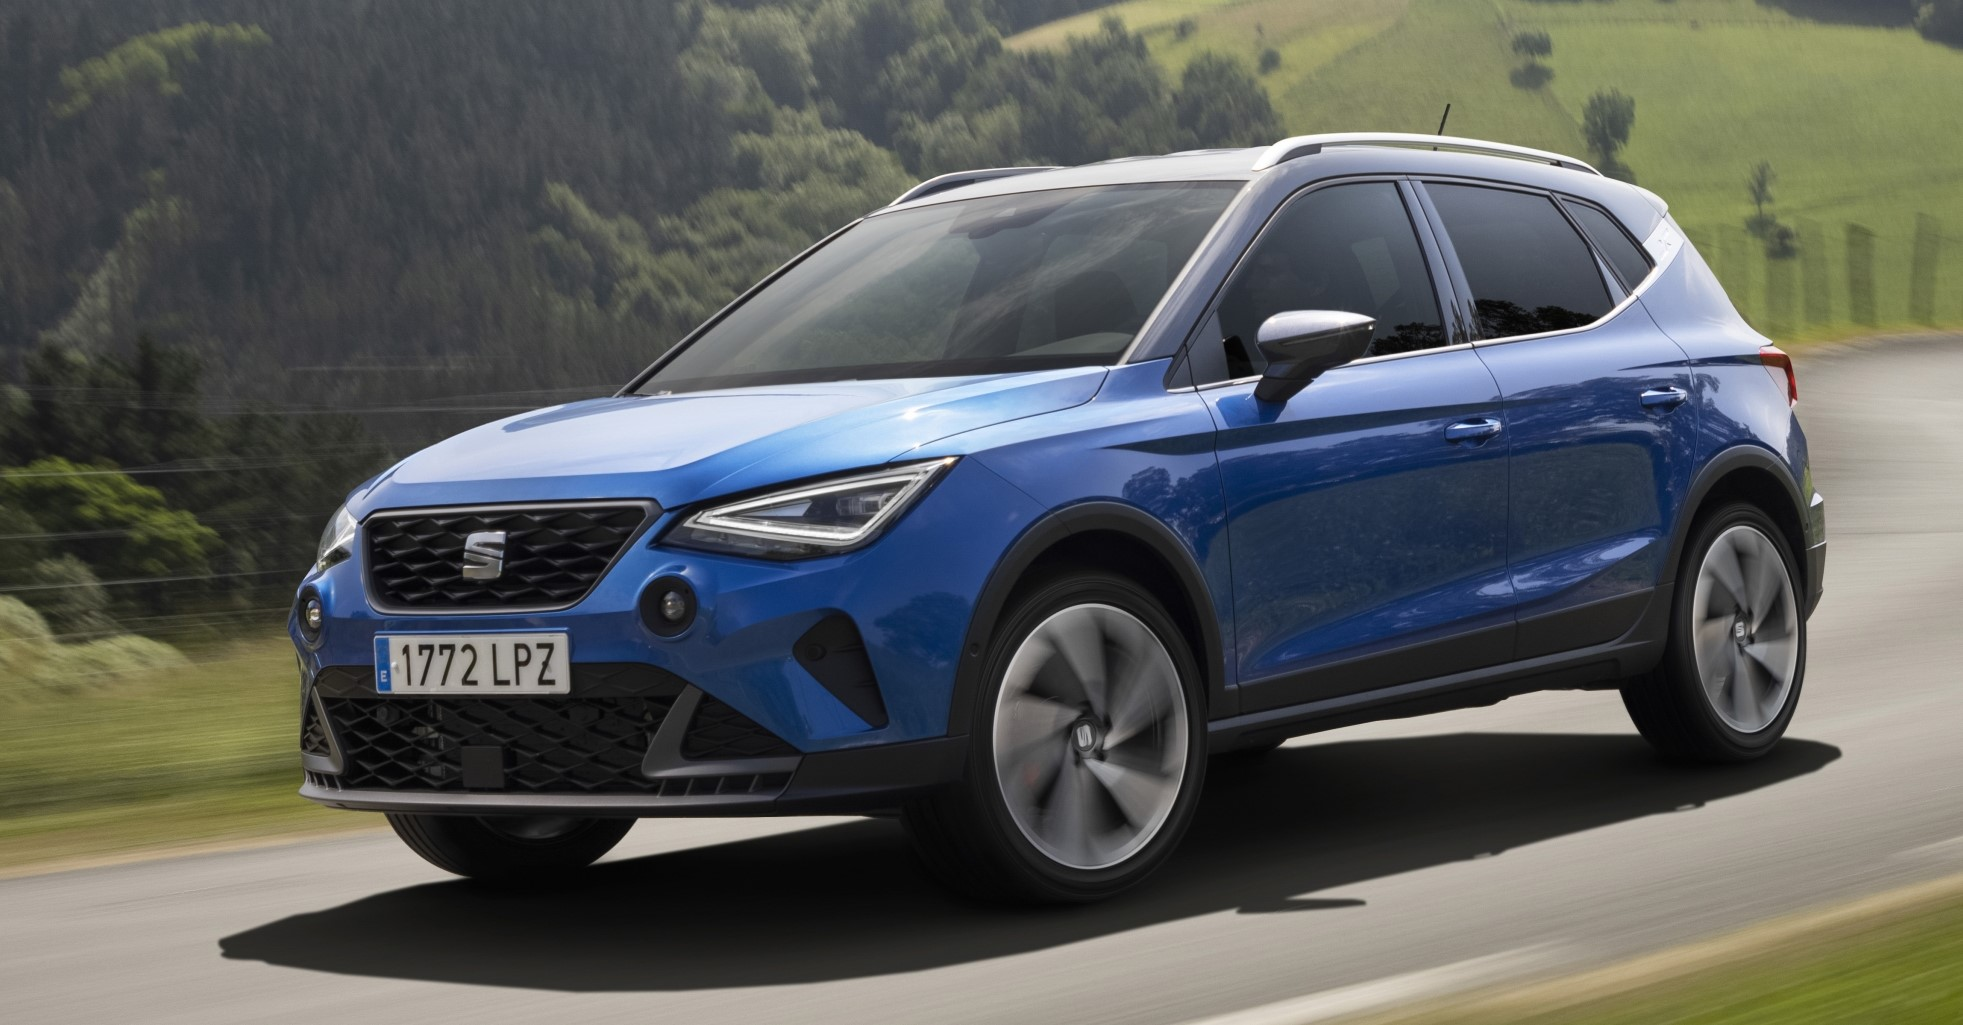 The SEAT Arona has been refreshed